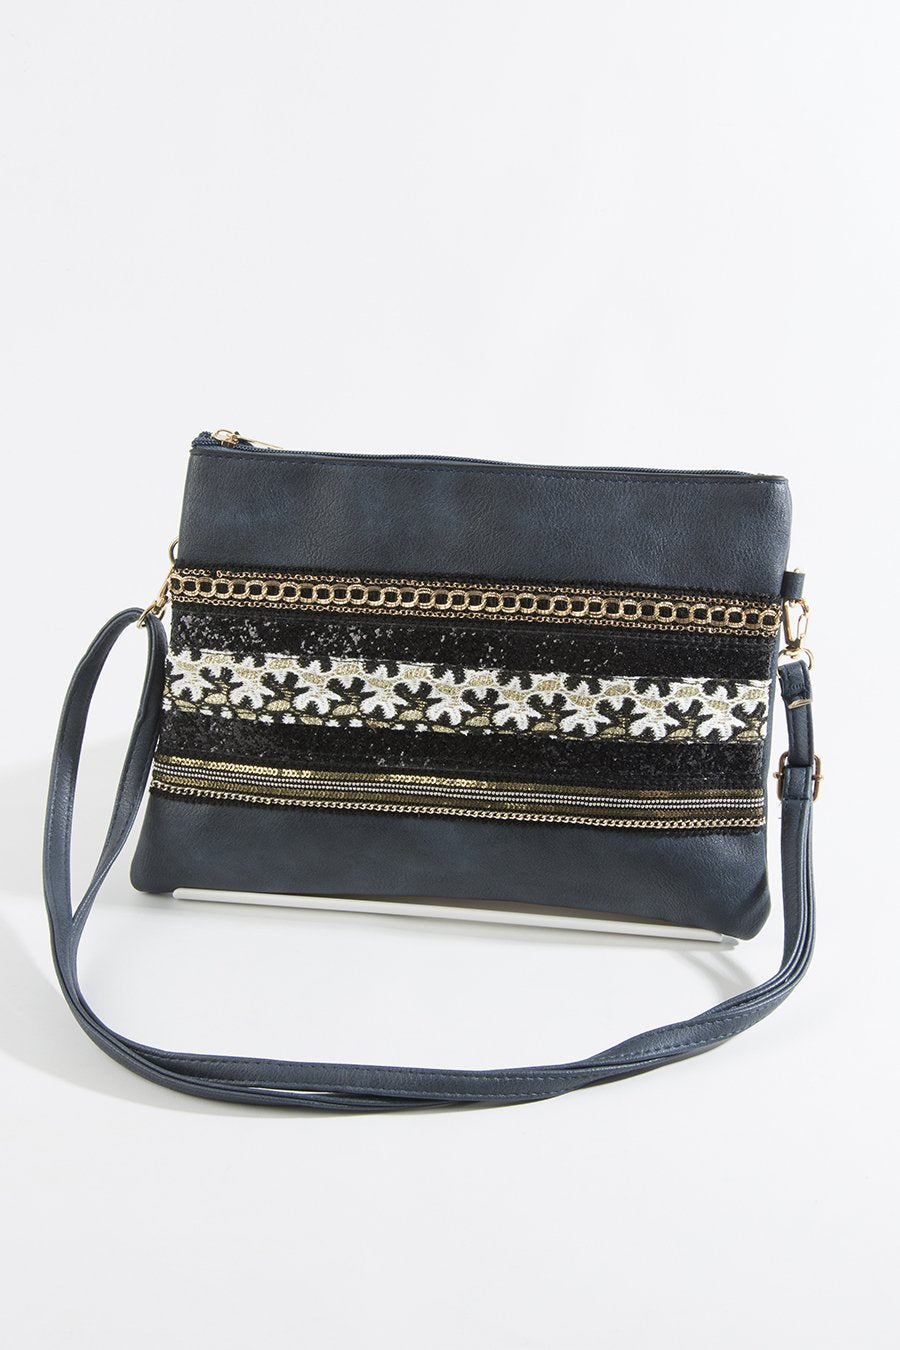 Navy faux leather bag with glitter and sequins